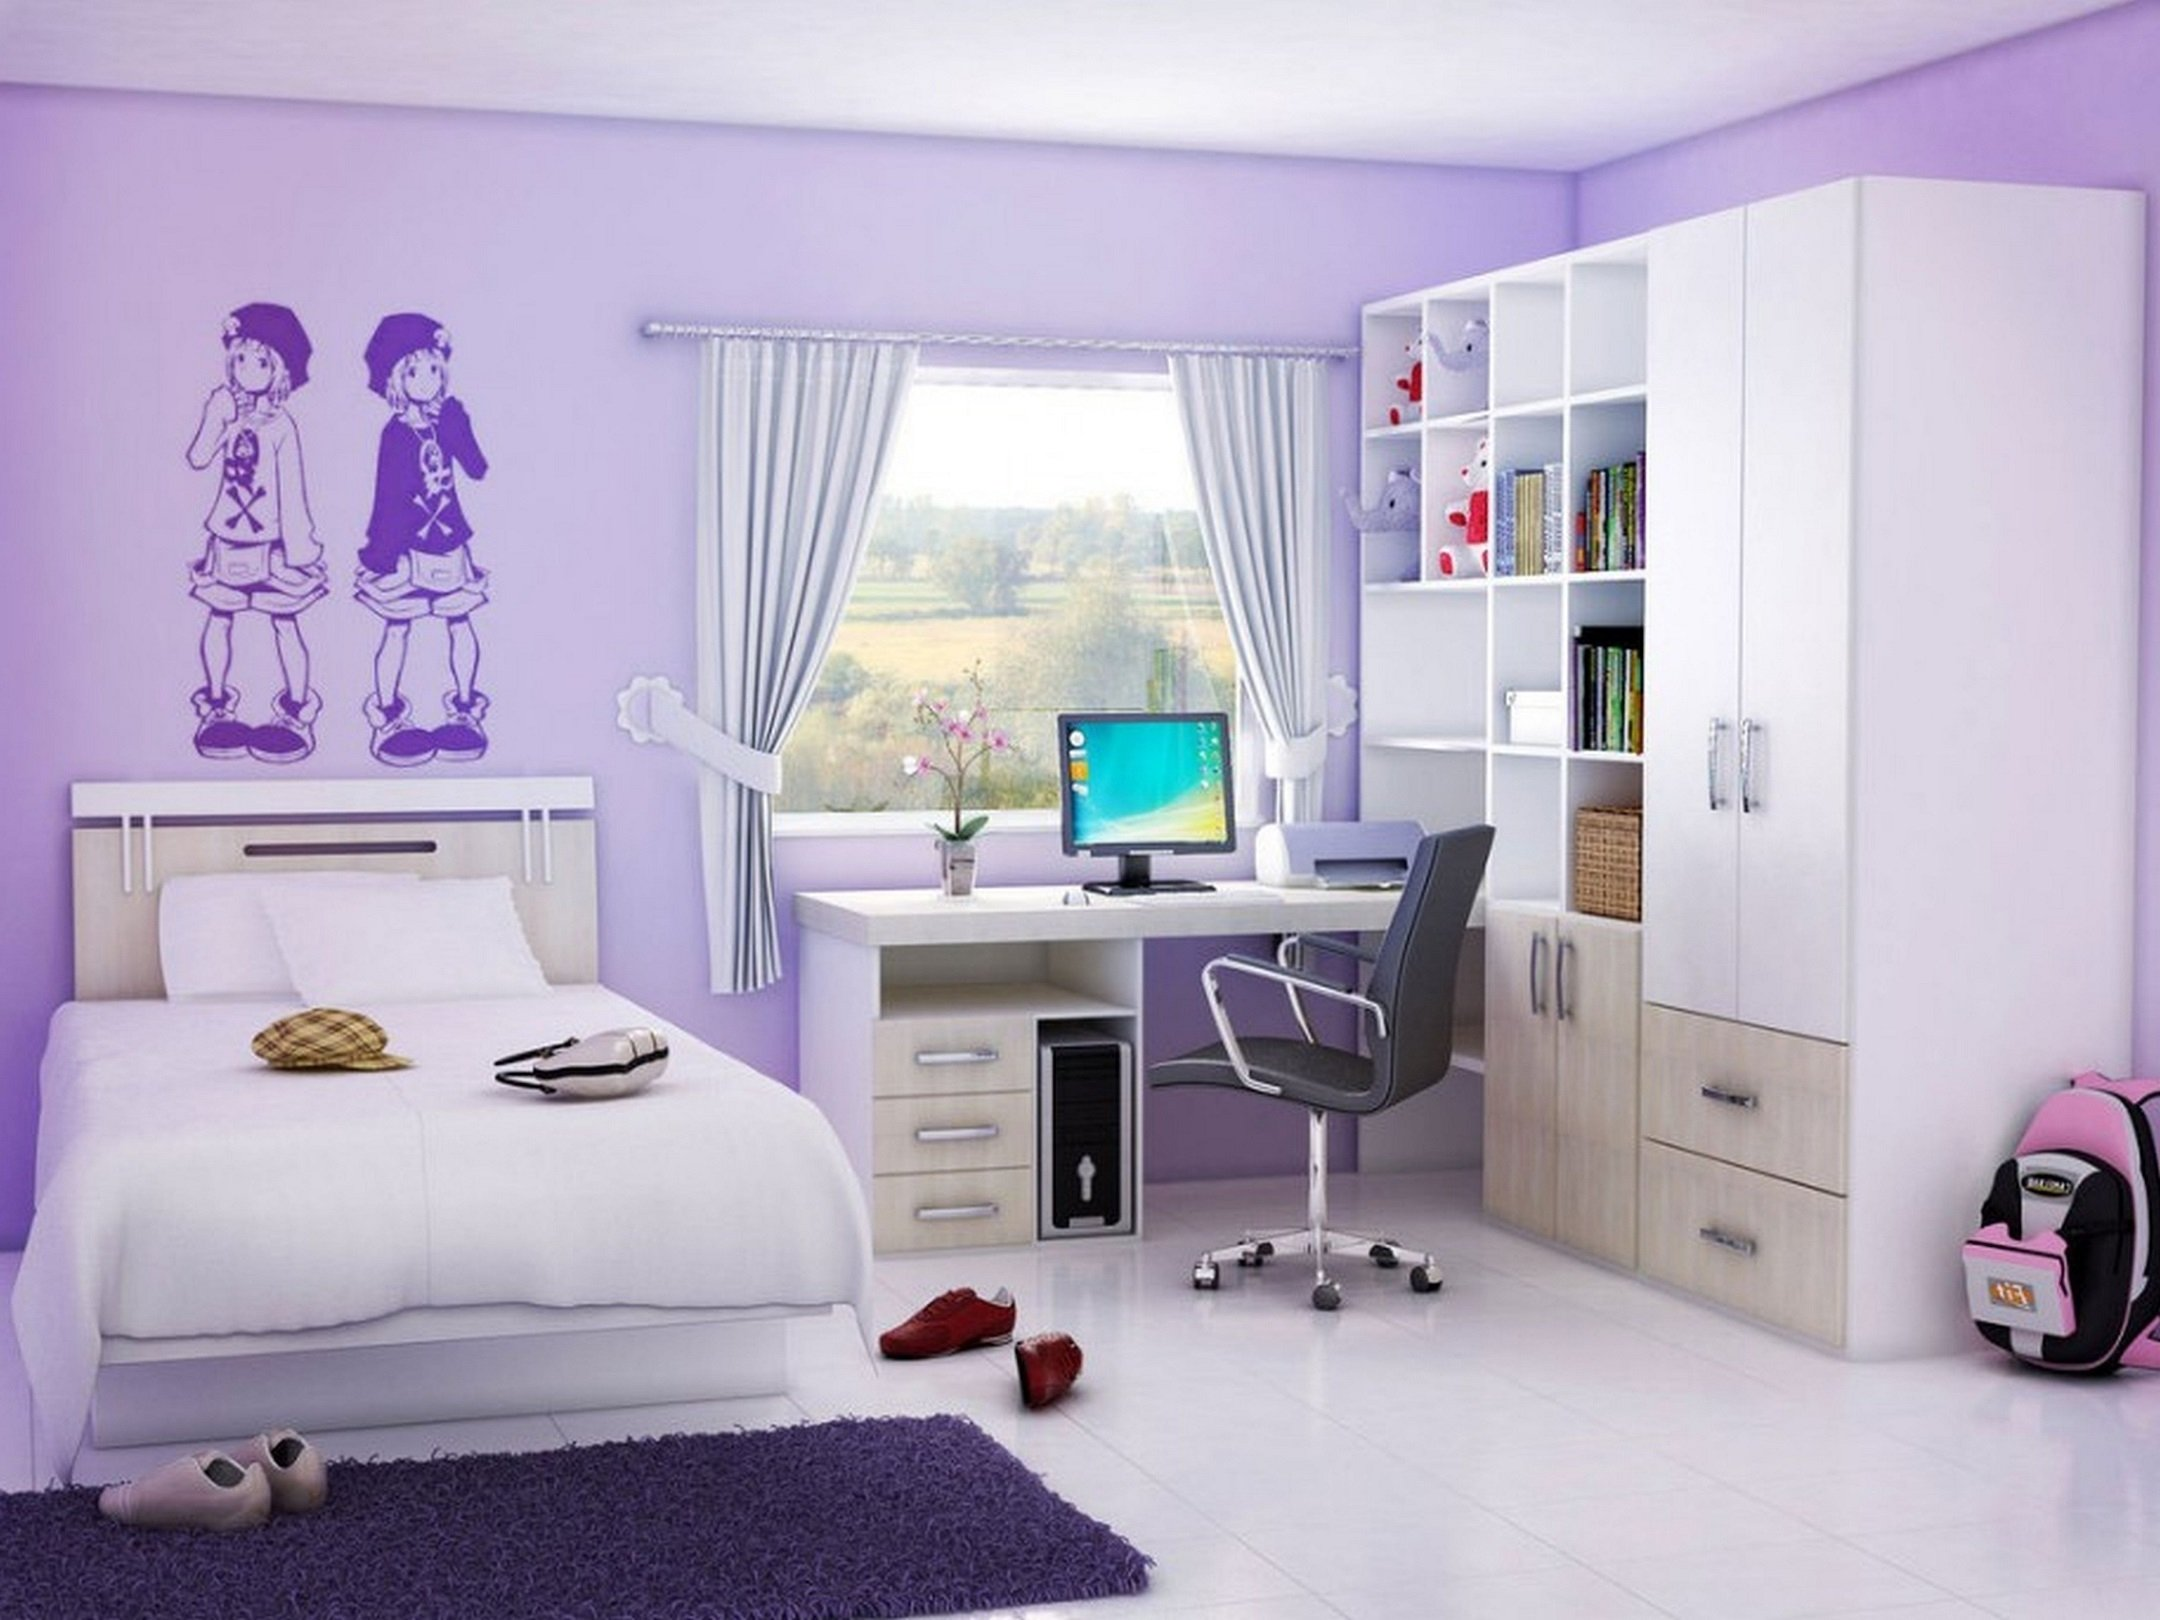 10 Stylish Small Bedroom Ideas For Girls teenage girl bedroom designs for small rooms bedroom appealing small 2020